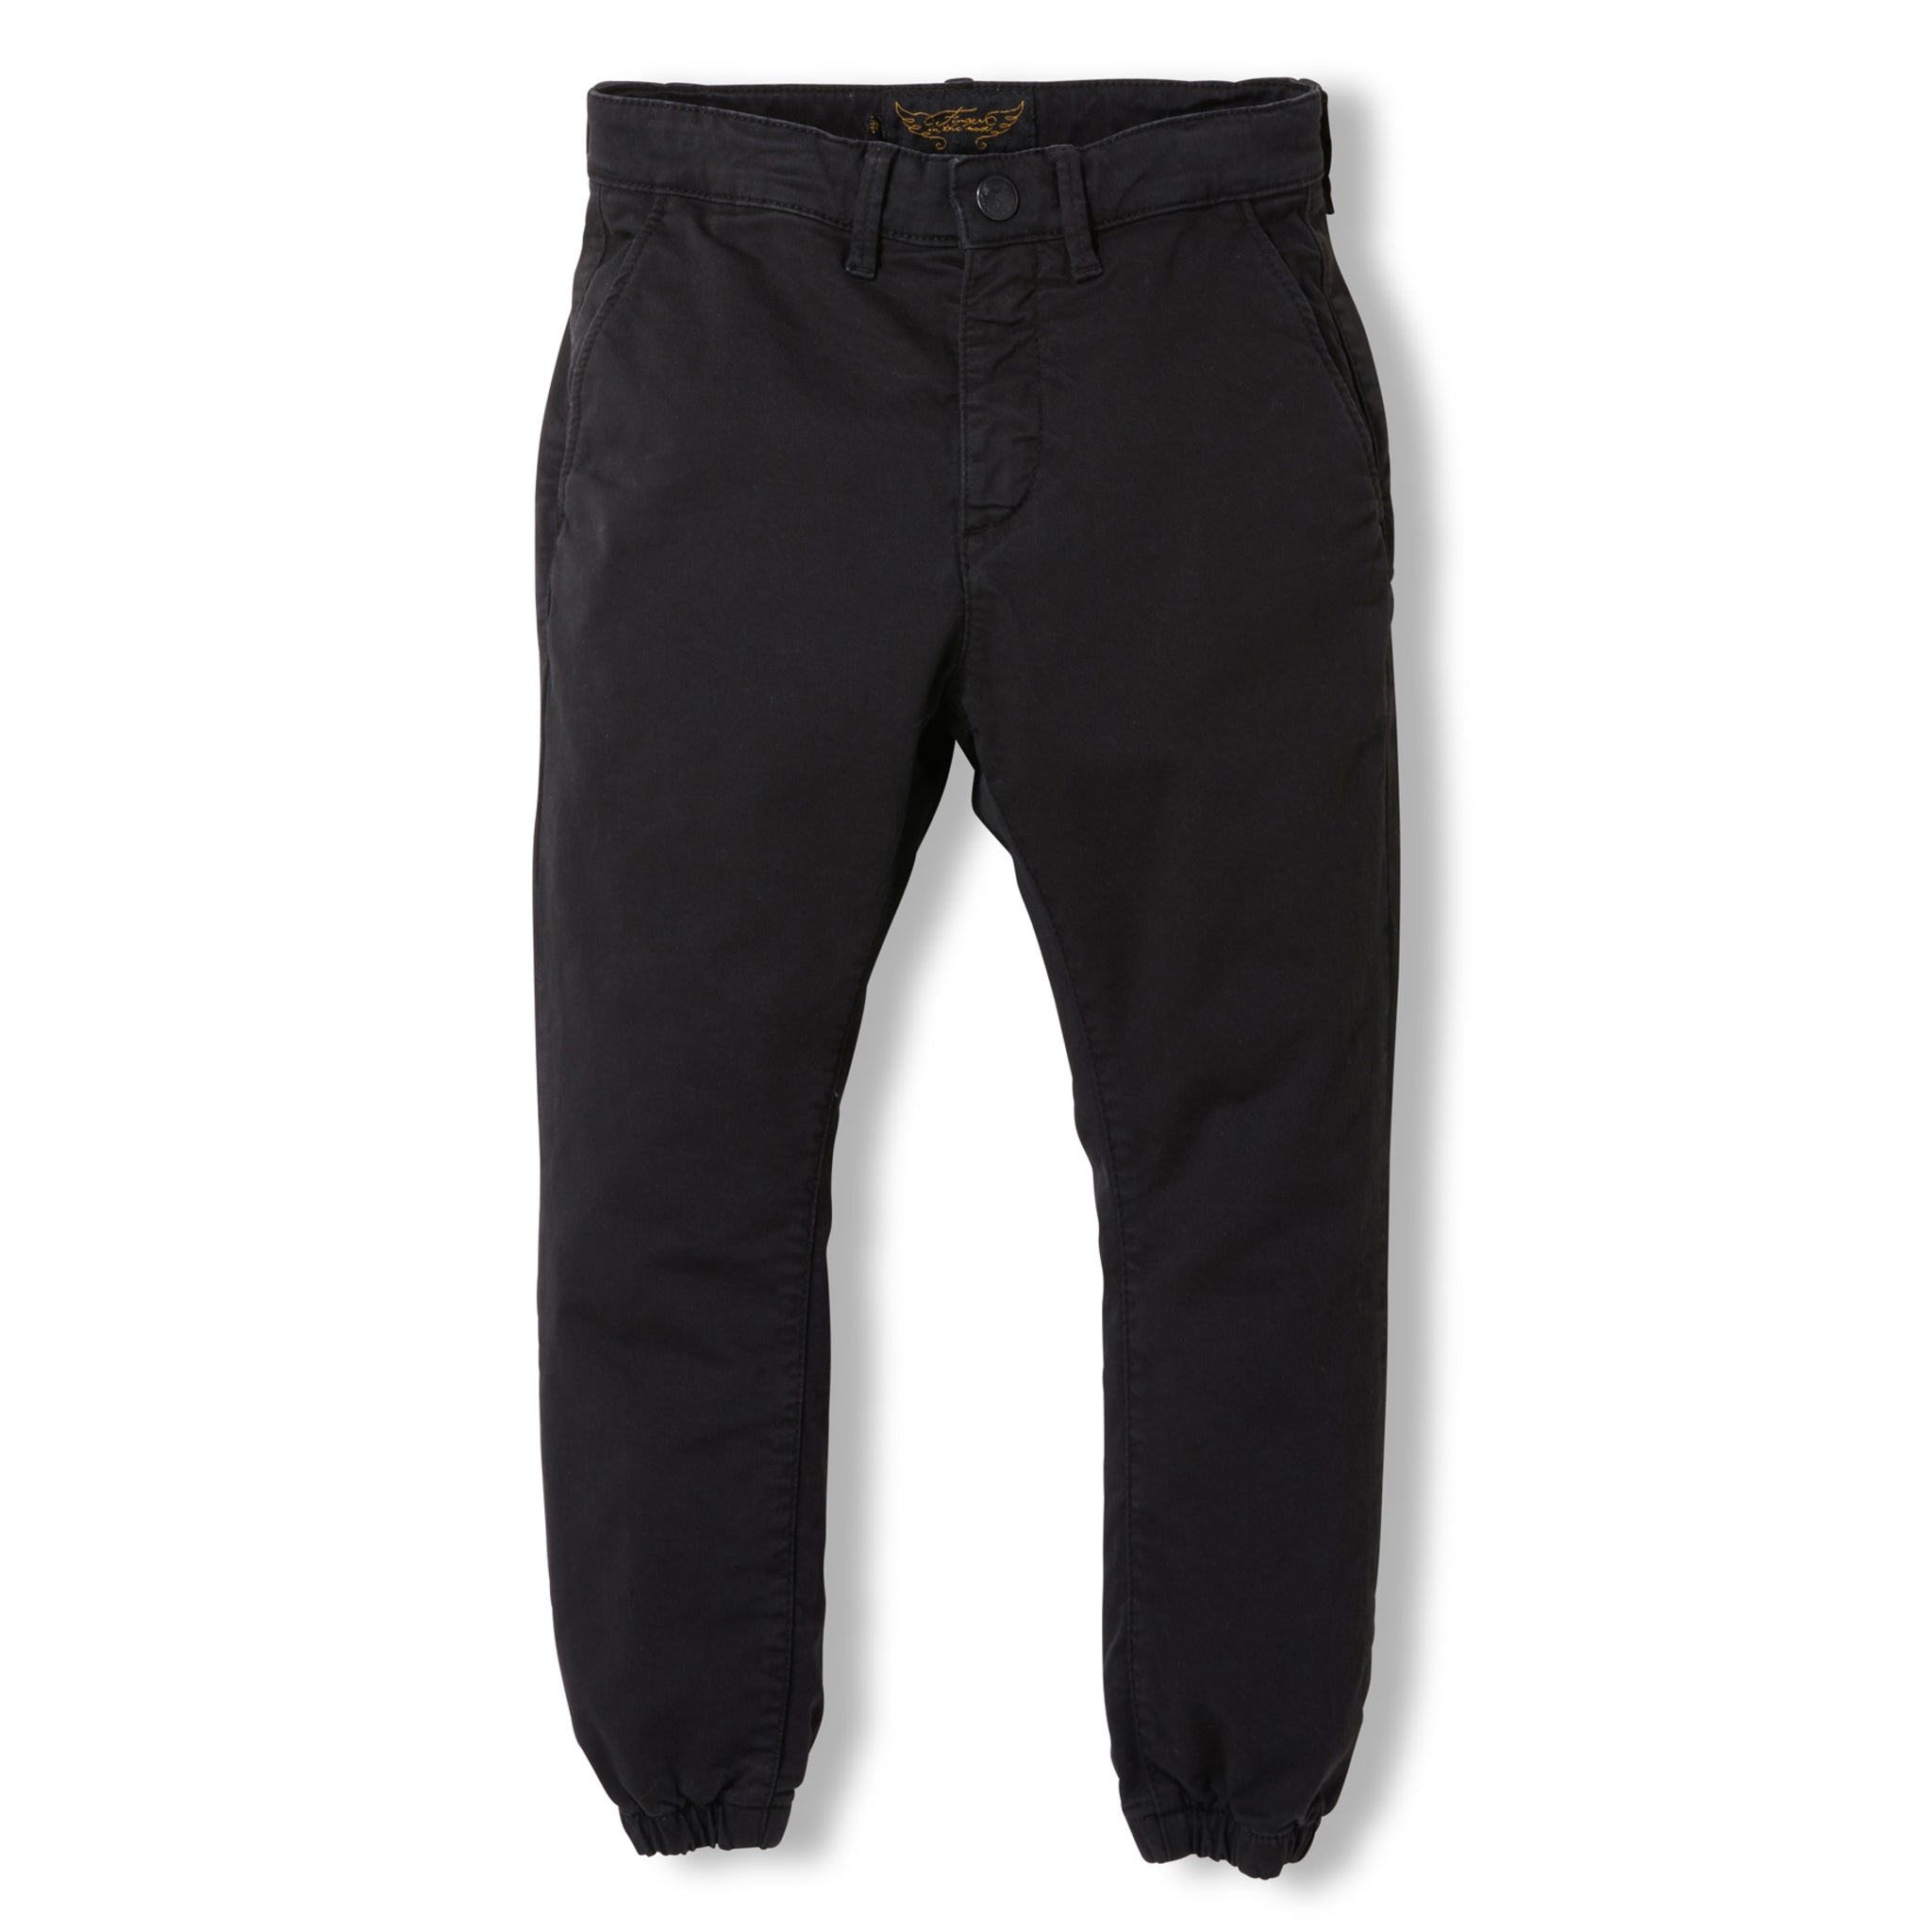 SKATER Summer Black -  Woven Elasticed Bottom Chino Fit Pants 1